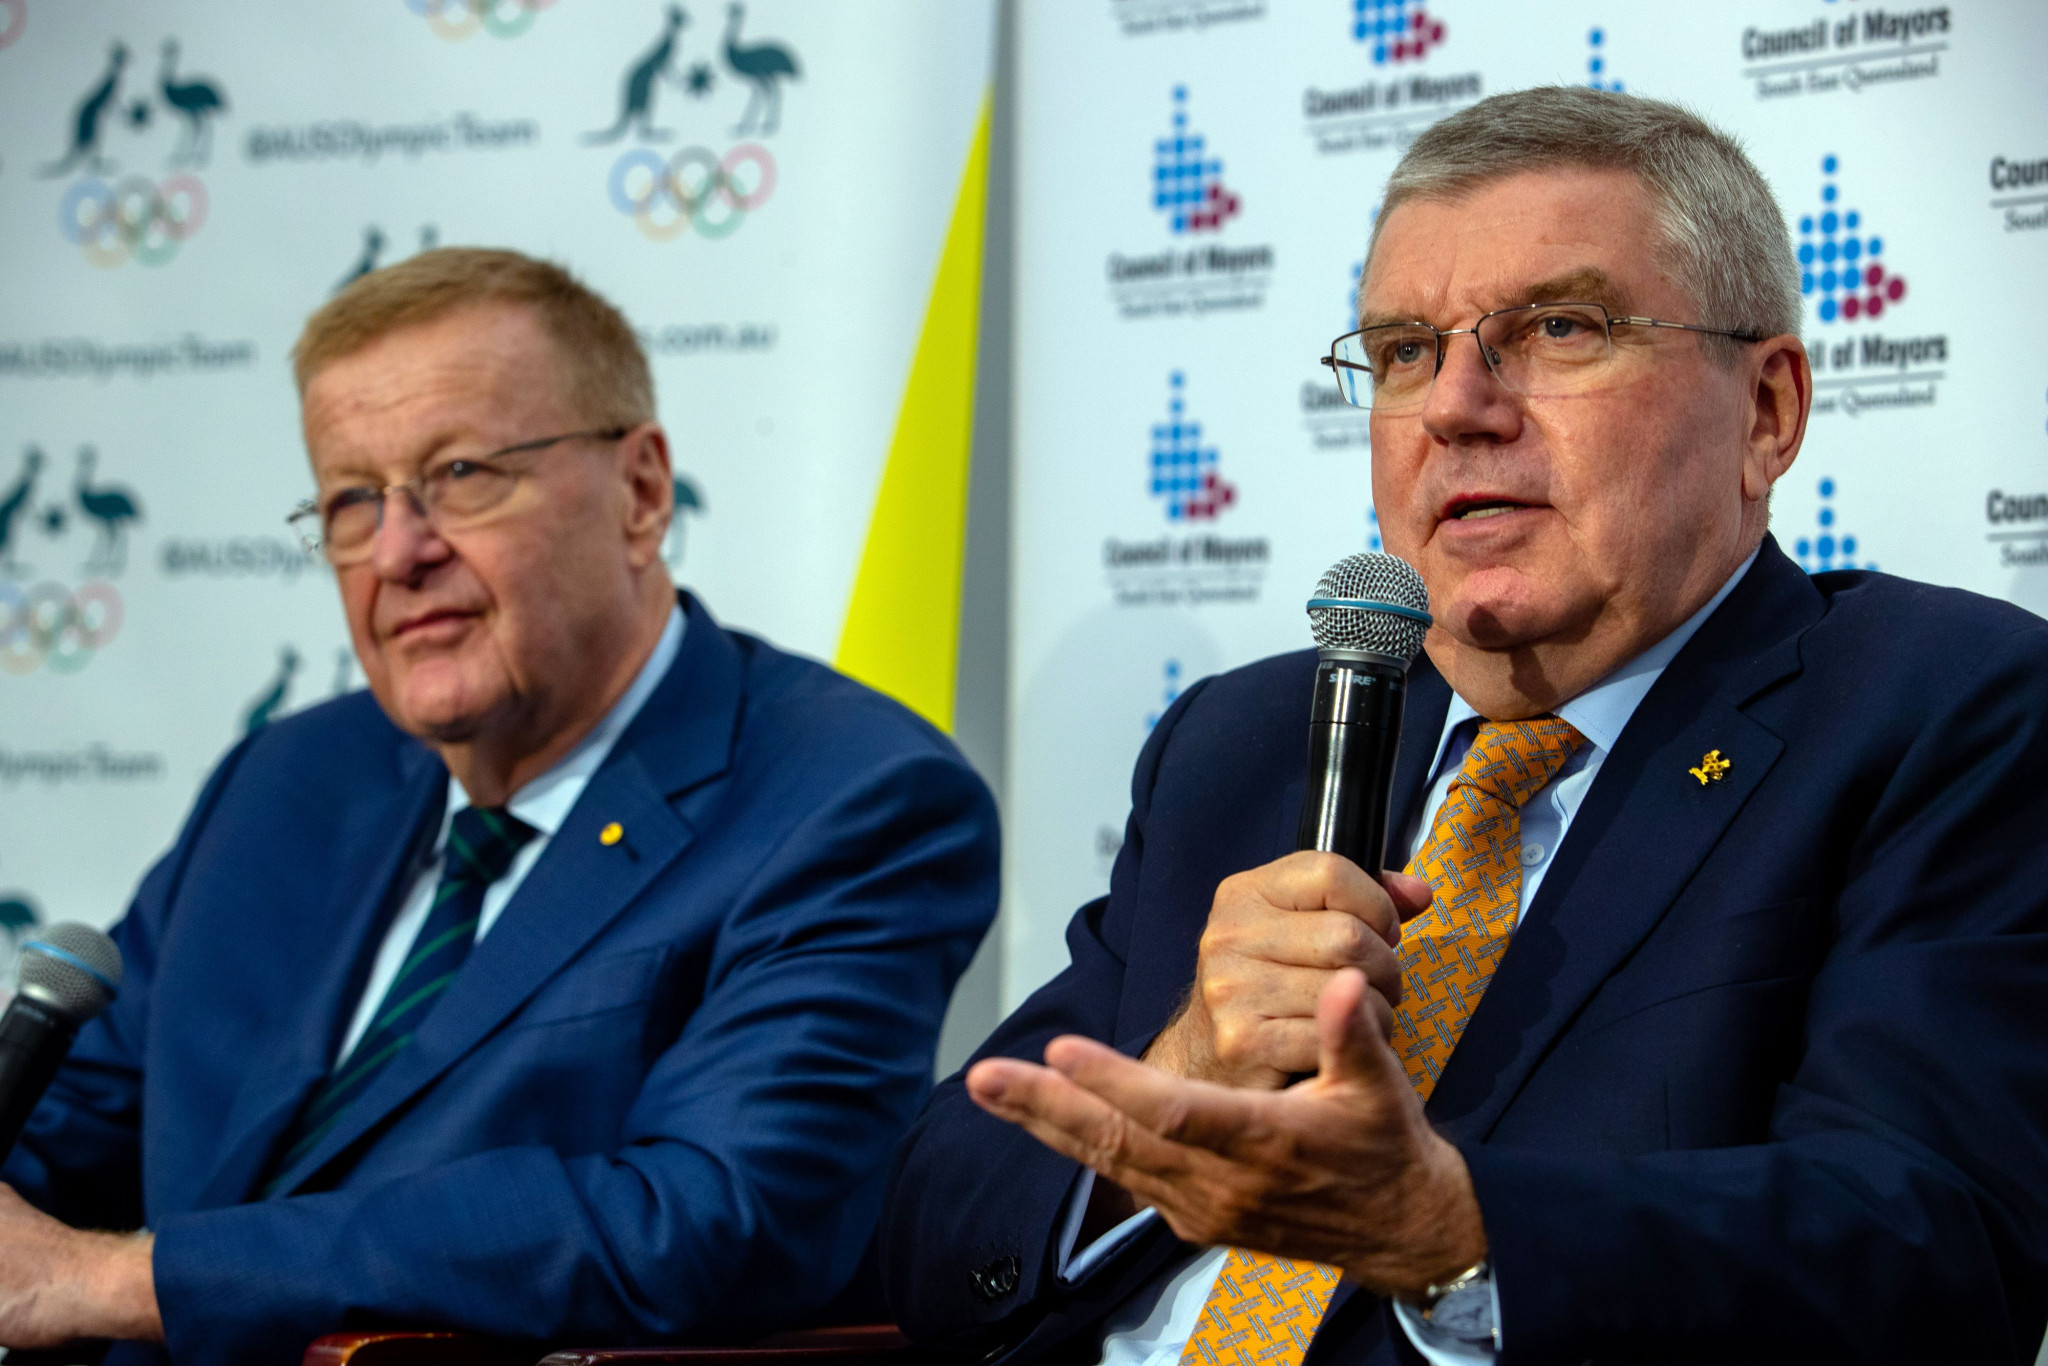 John Coates, left, claimed the meeting reaffirmed the commitment from all levels of Government and the AOC for a 2032 Olympic and Paralympic Games bid ahead of a first meeting as a group with IOC President Thomas Bach, right, in Lausanne ©Getty Images